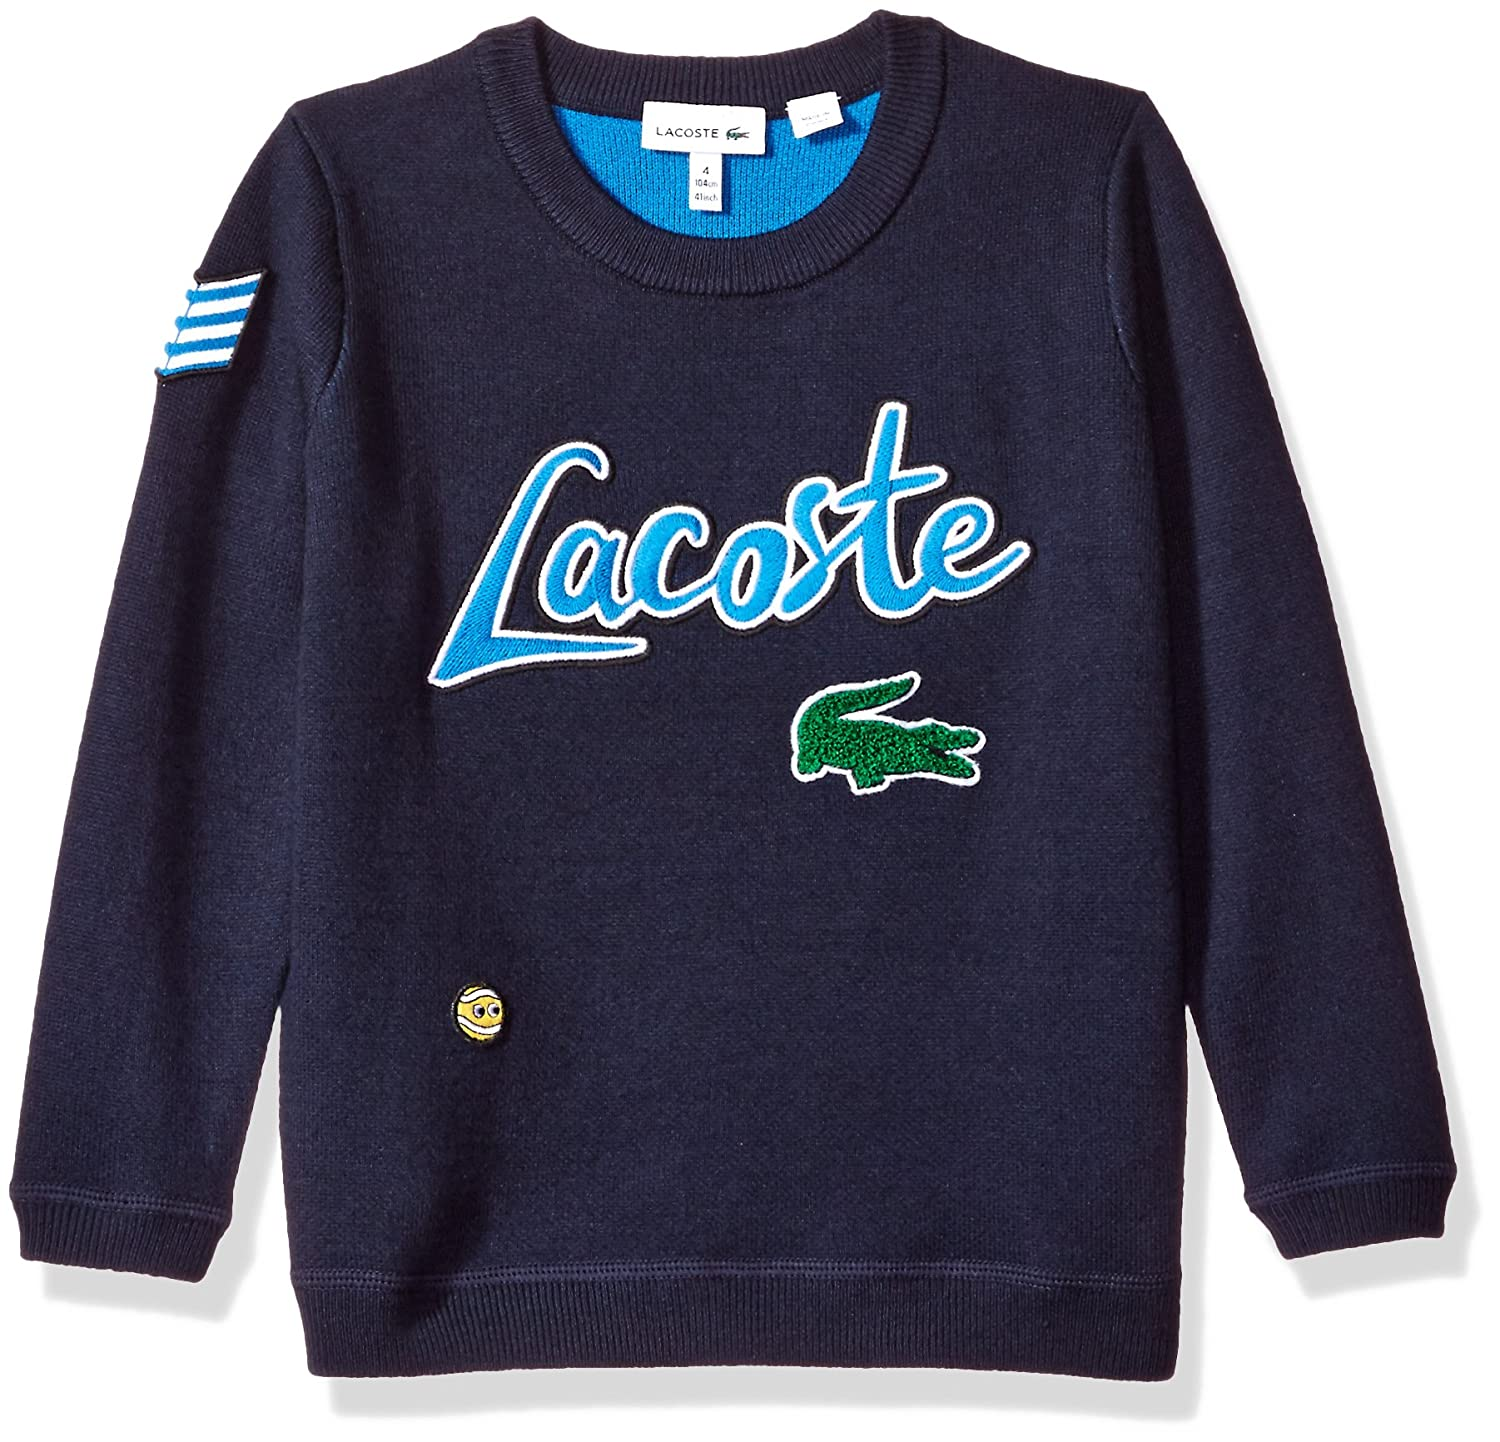 Lacoste Boys' Crew Neck Holiday Animation Sweater West Indies Blue/Black/Black 10A AJ9809-51